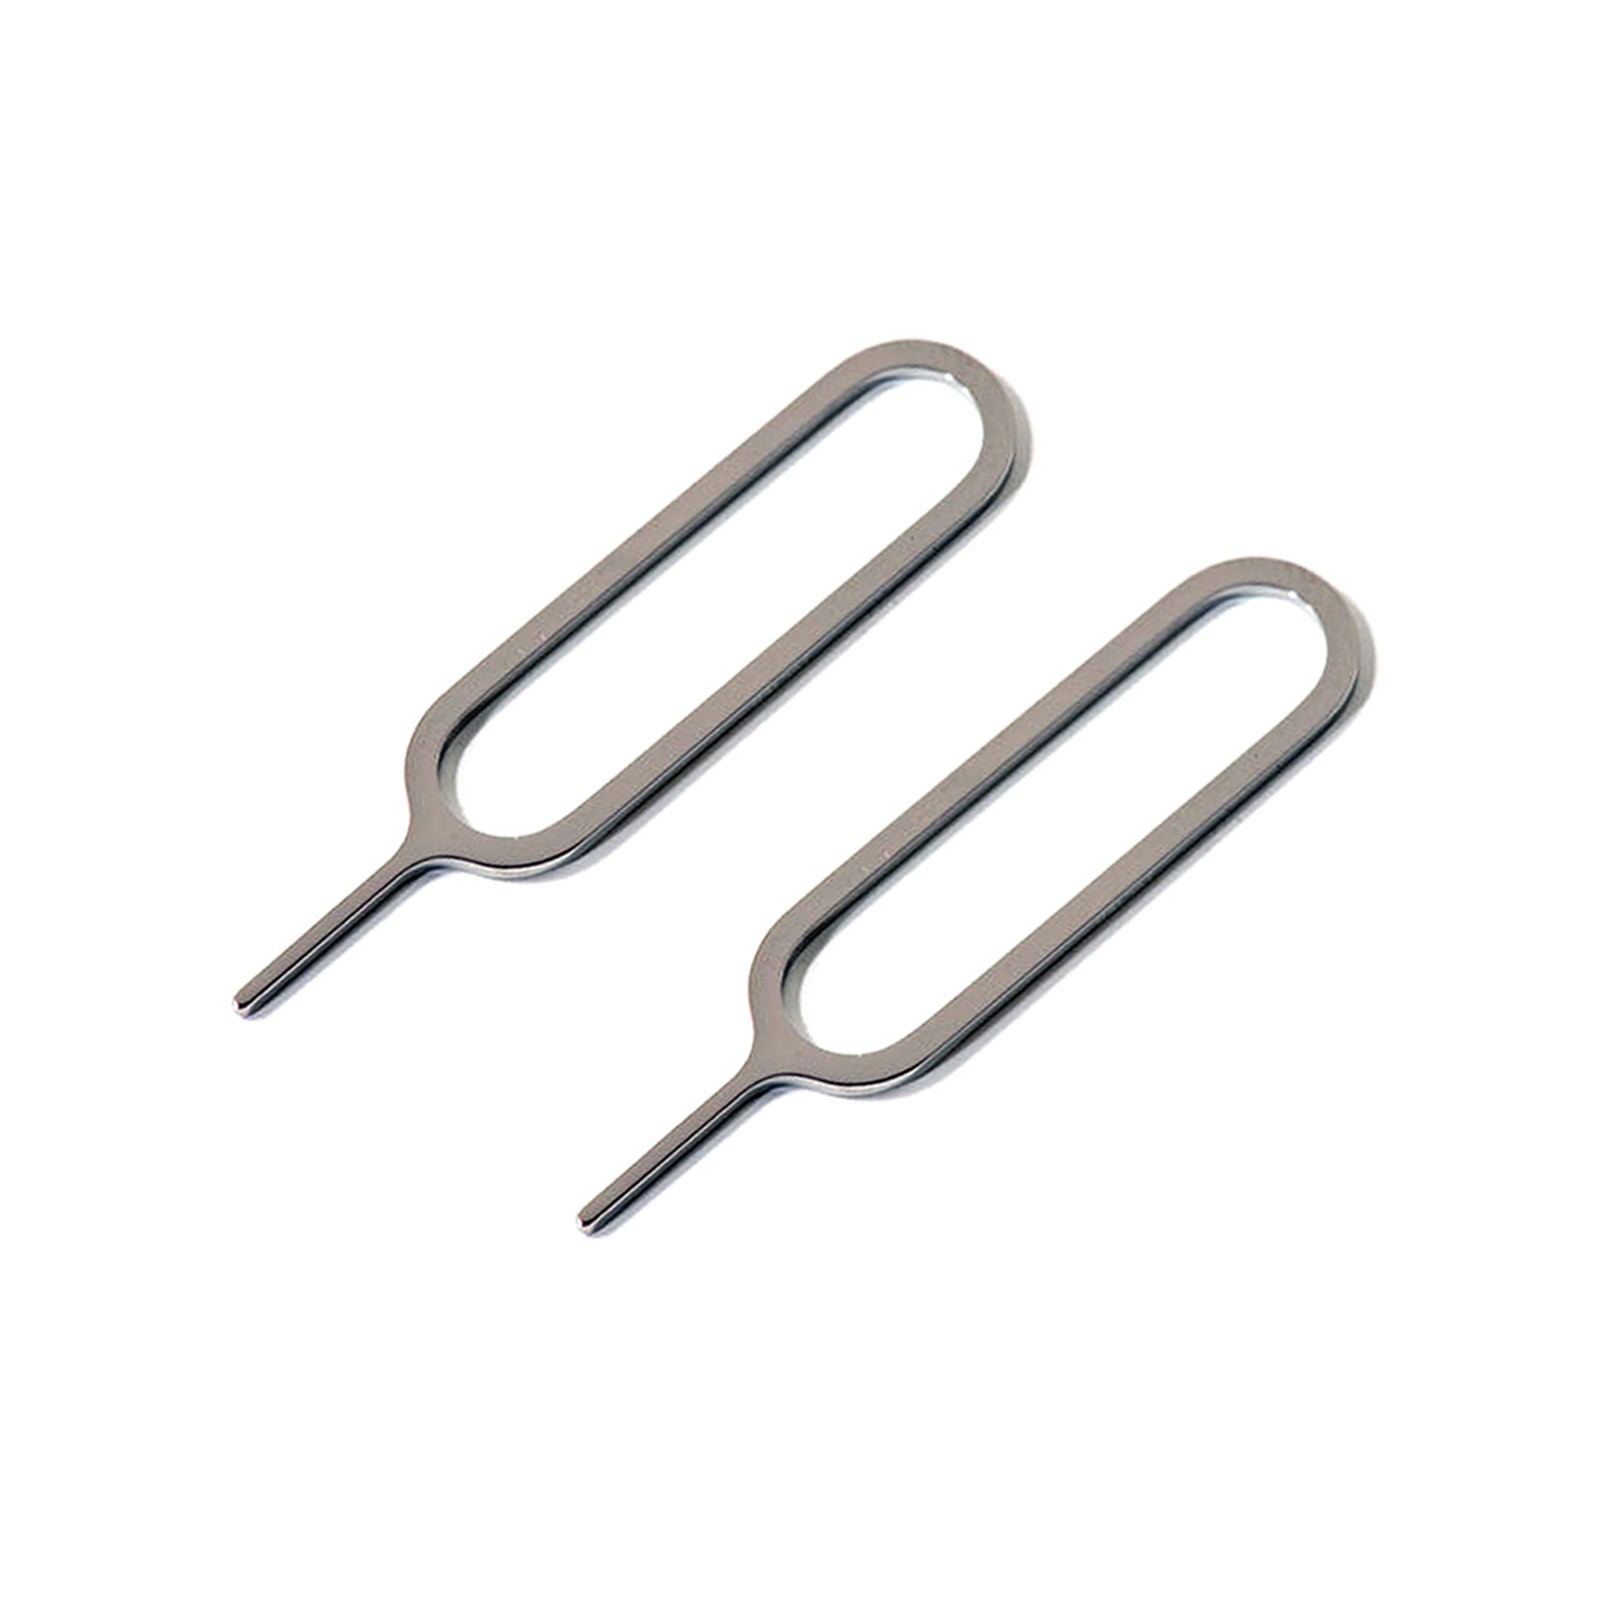 2x Sim Card Tray Eject Needle Pin For Ipad Iphone 4s 5 6 7